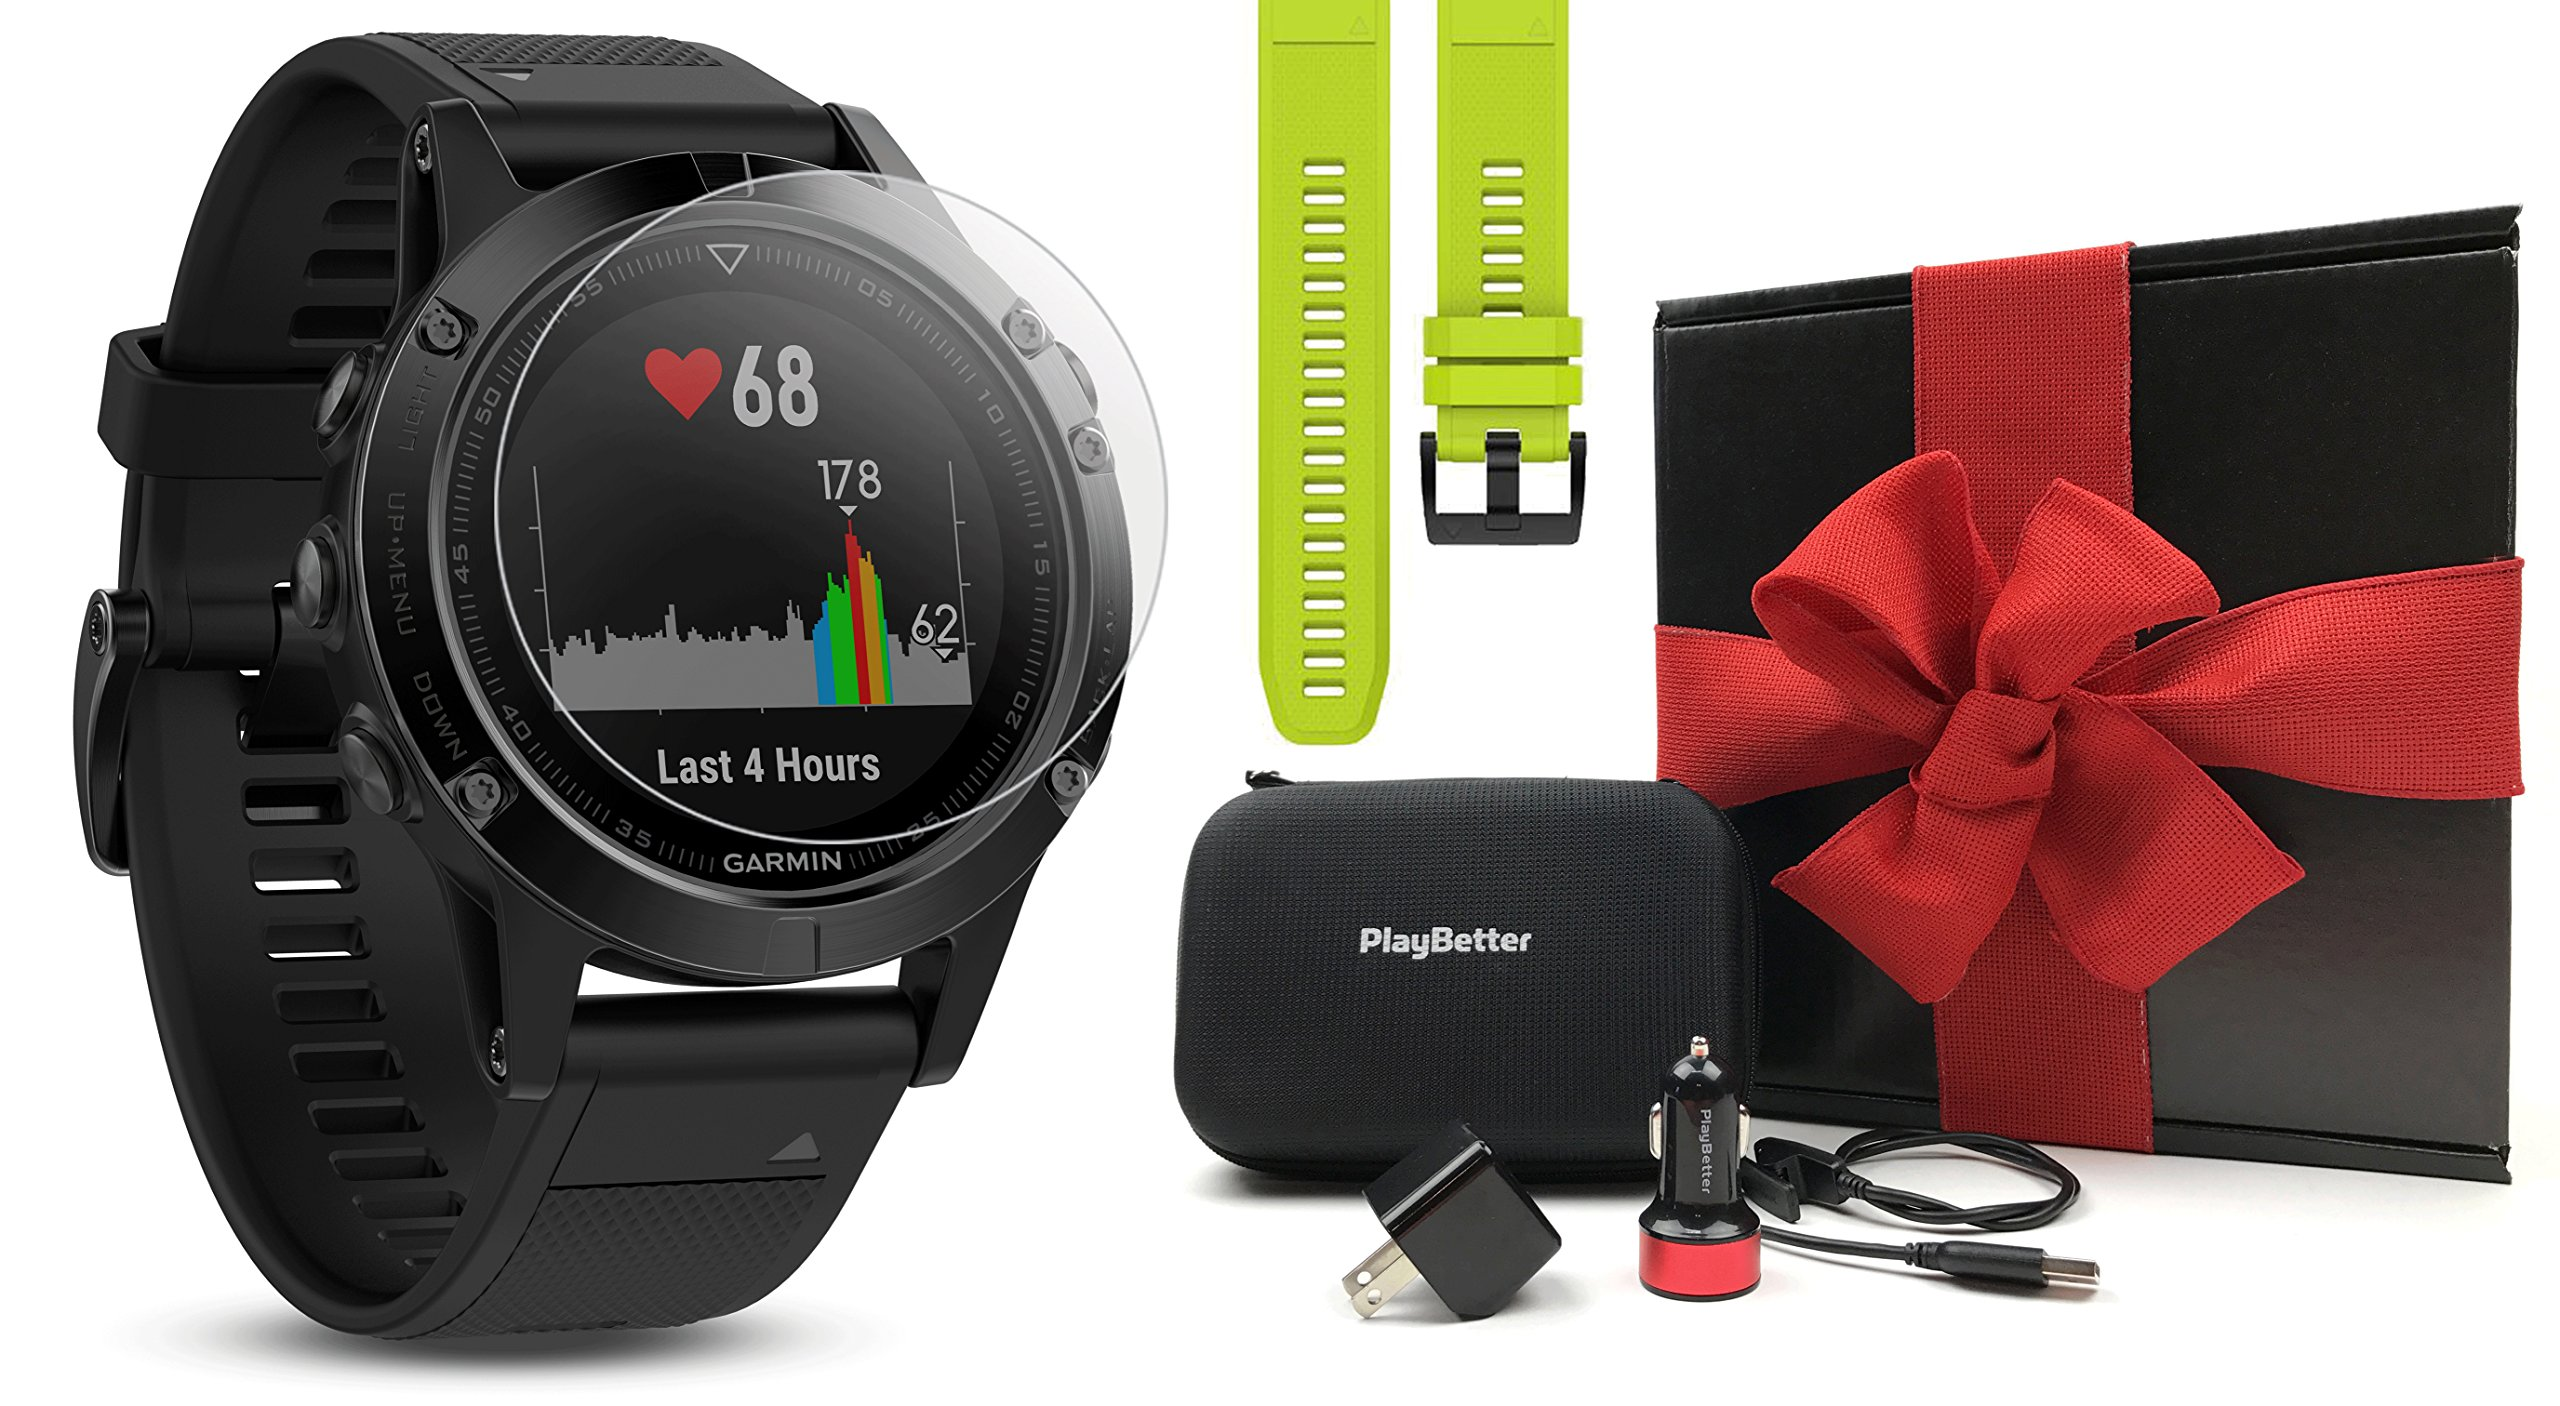 Garmin fenix 5 Sapphire (Black/Black Band) GIFT BOX Bundle | Includes Extra Band (Yellow), Glass Screen Protector, PlayBetter USB Car/Wall Adapter, Protective Case | Multi-Sport GPS Watch, Wrist HR by PlayBetter (Image #1)